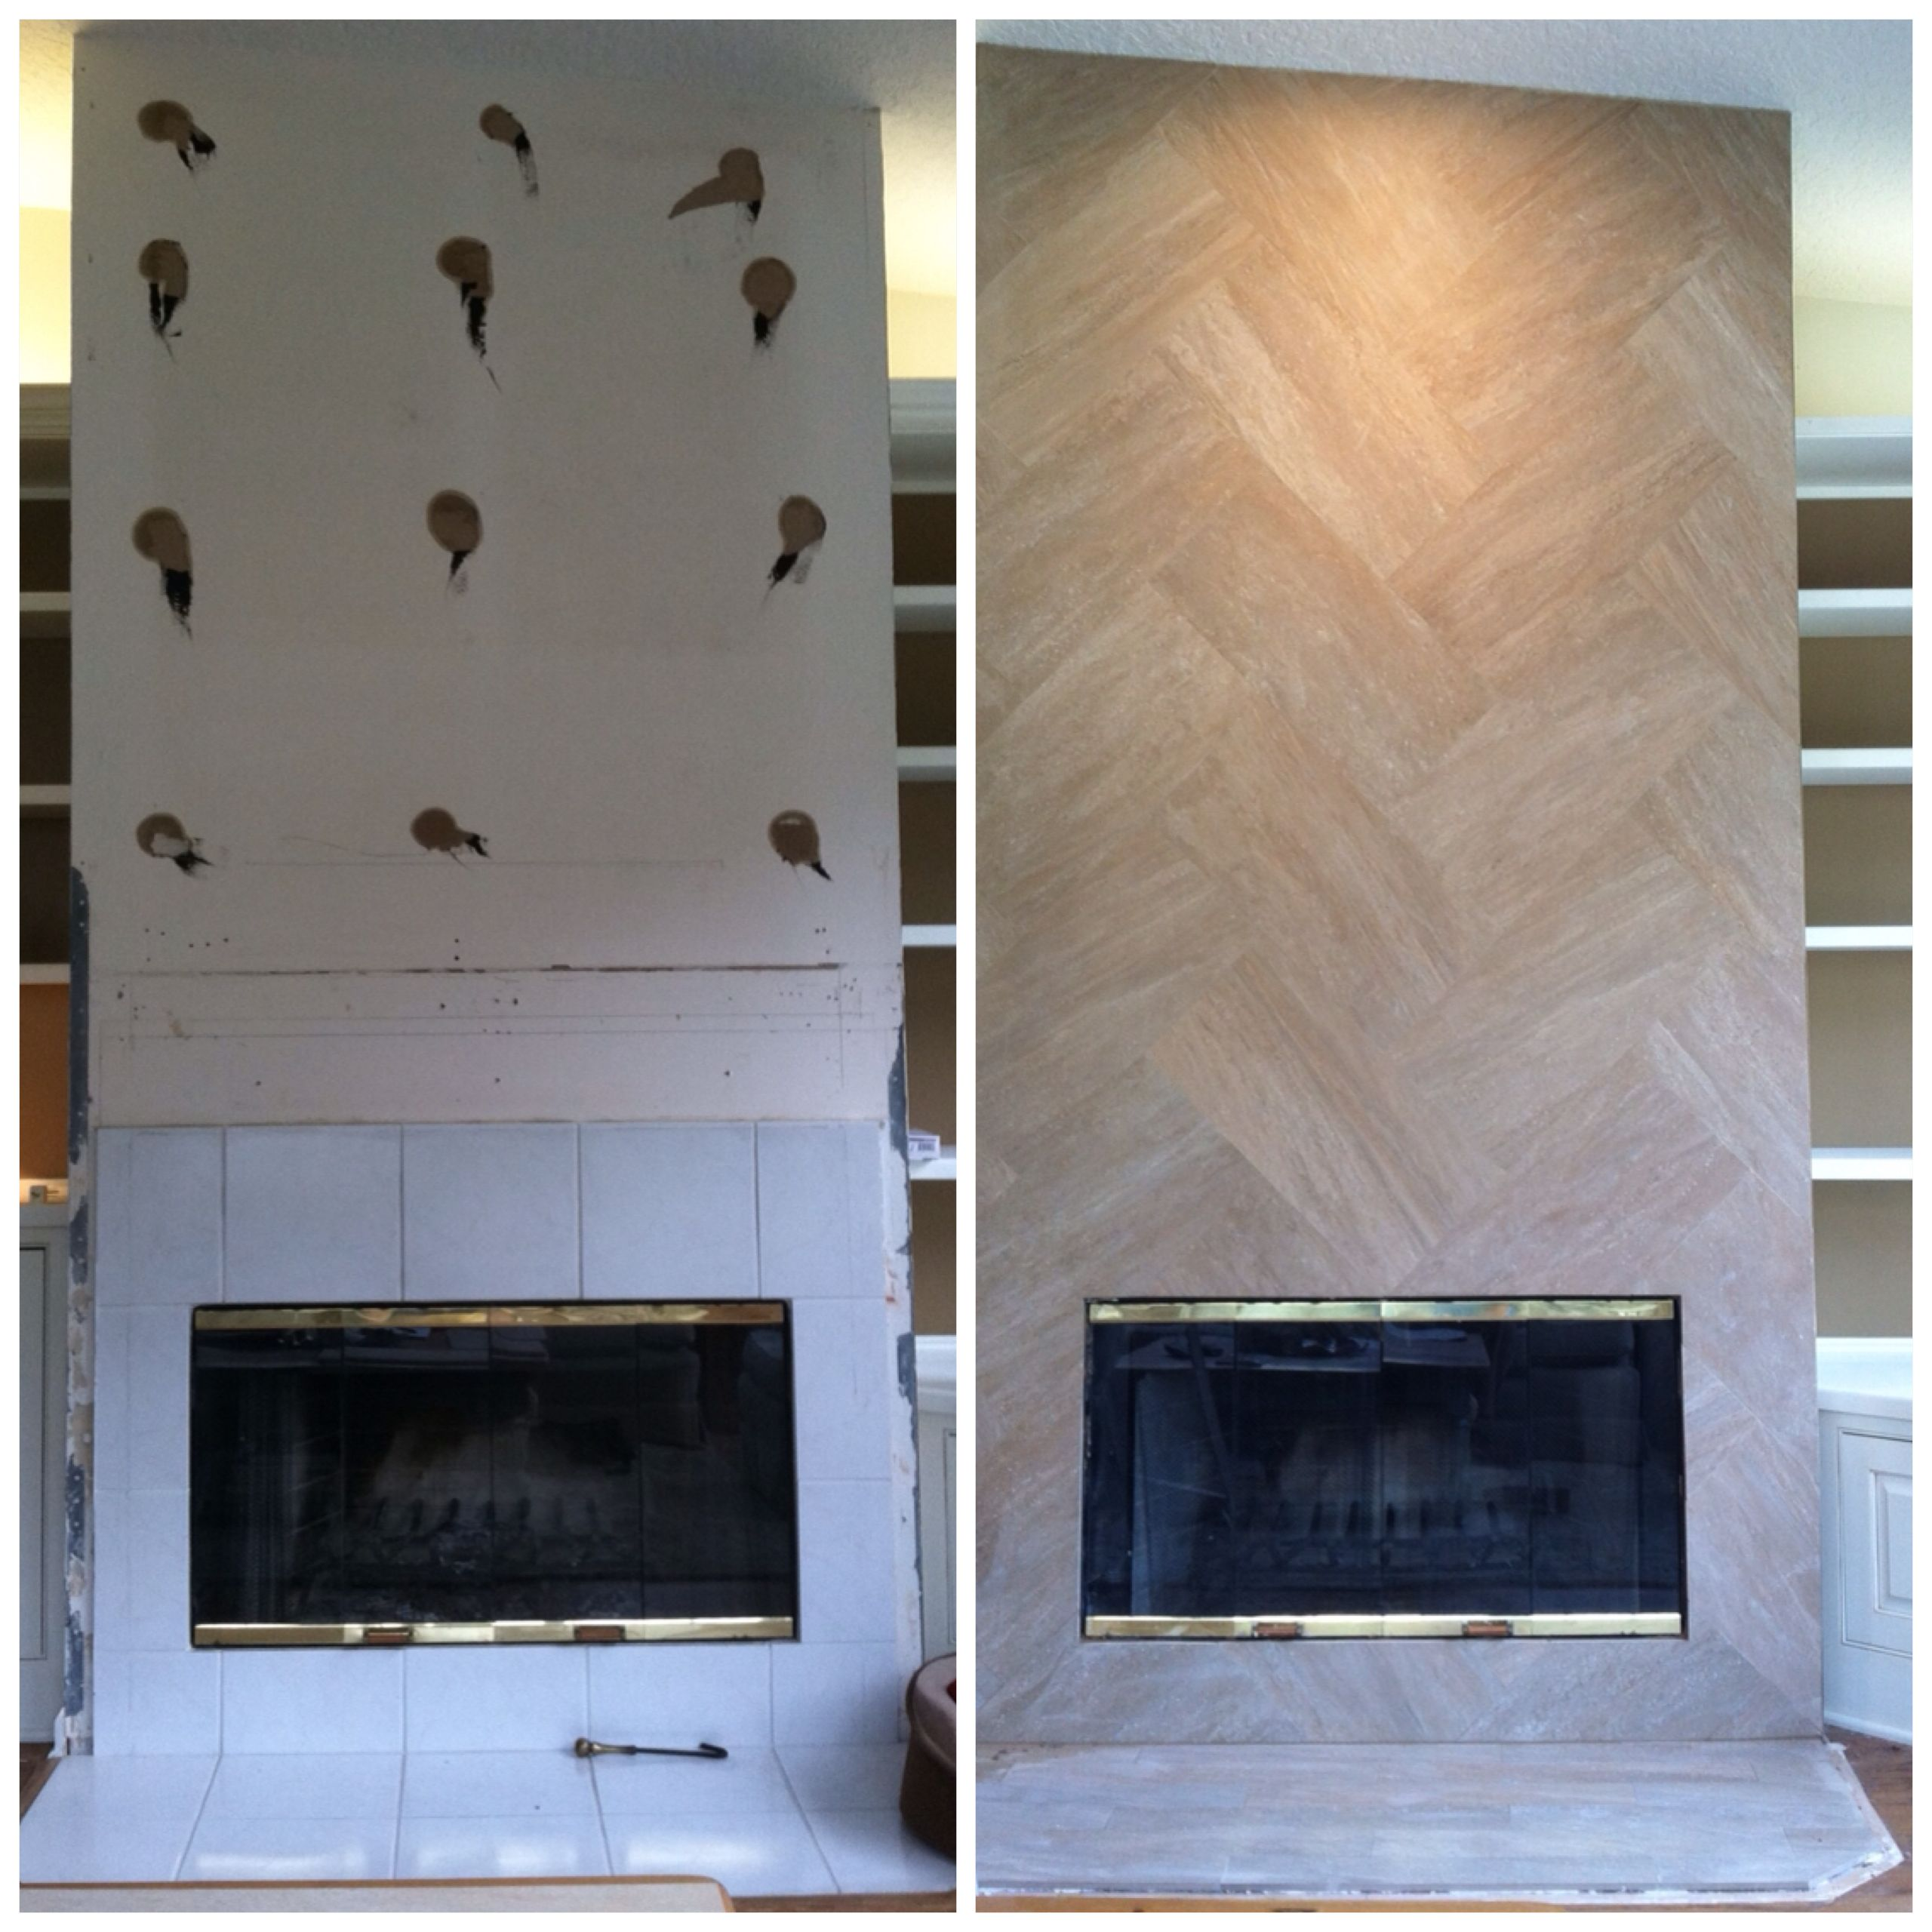 jazz up a fireplace with a 12 x 24 tile installed in a herringbone